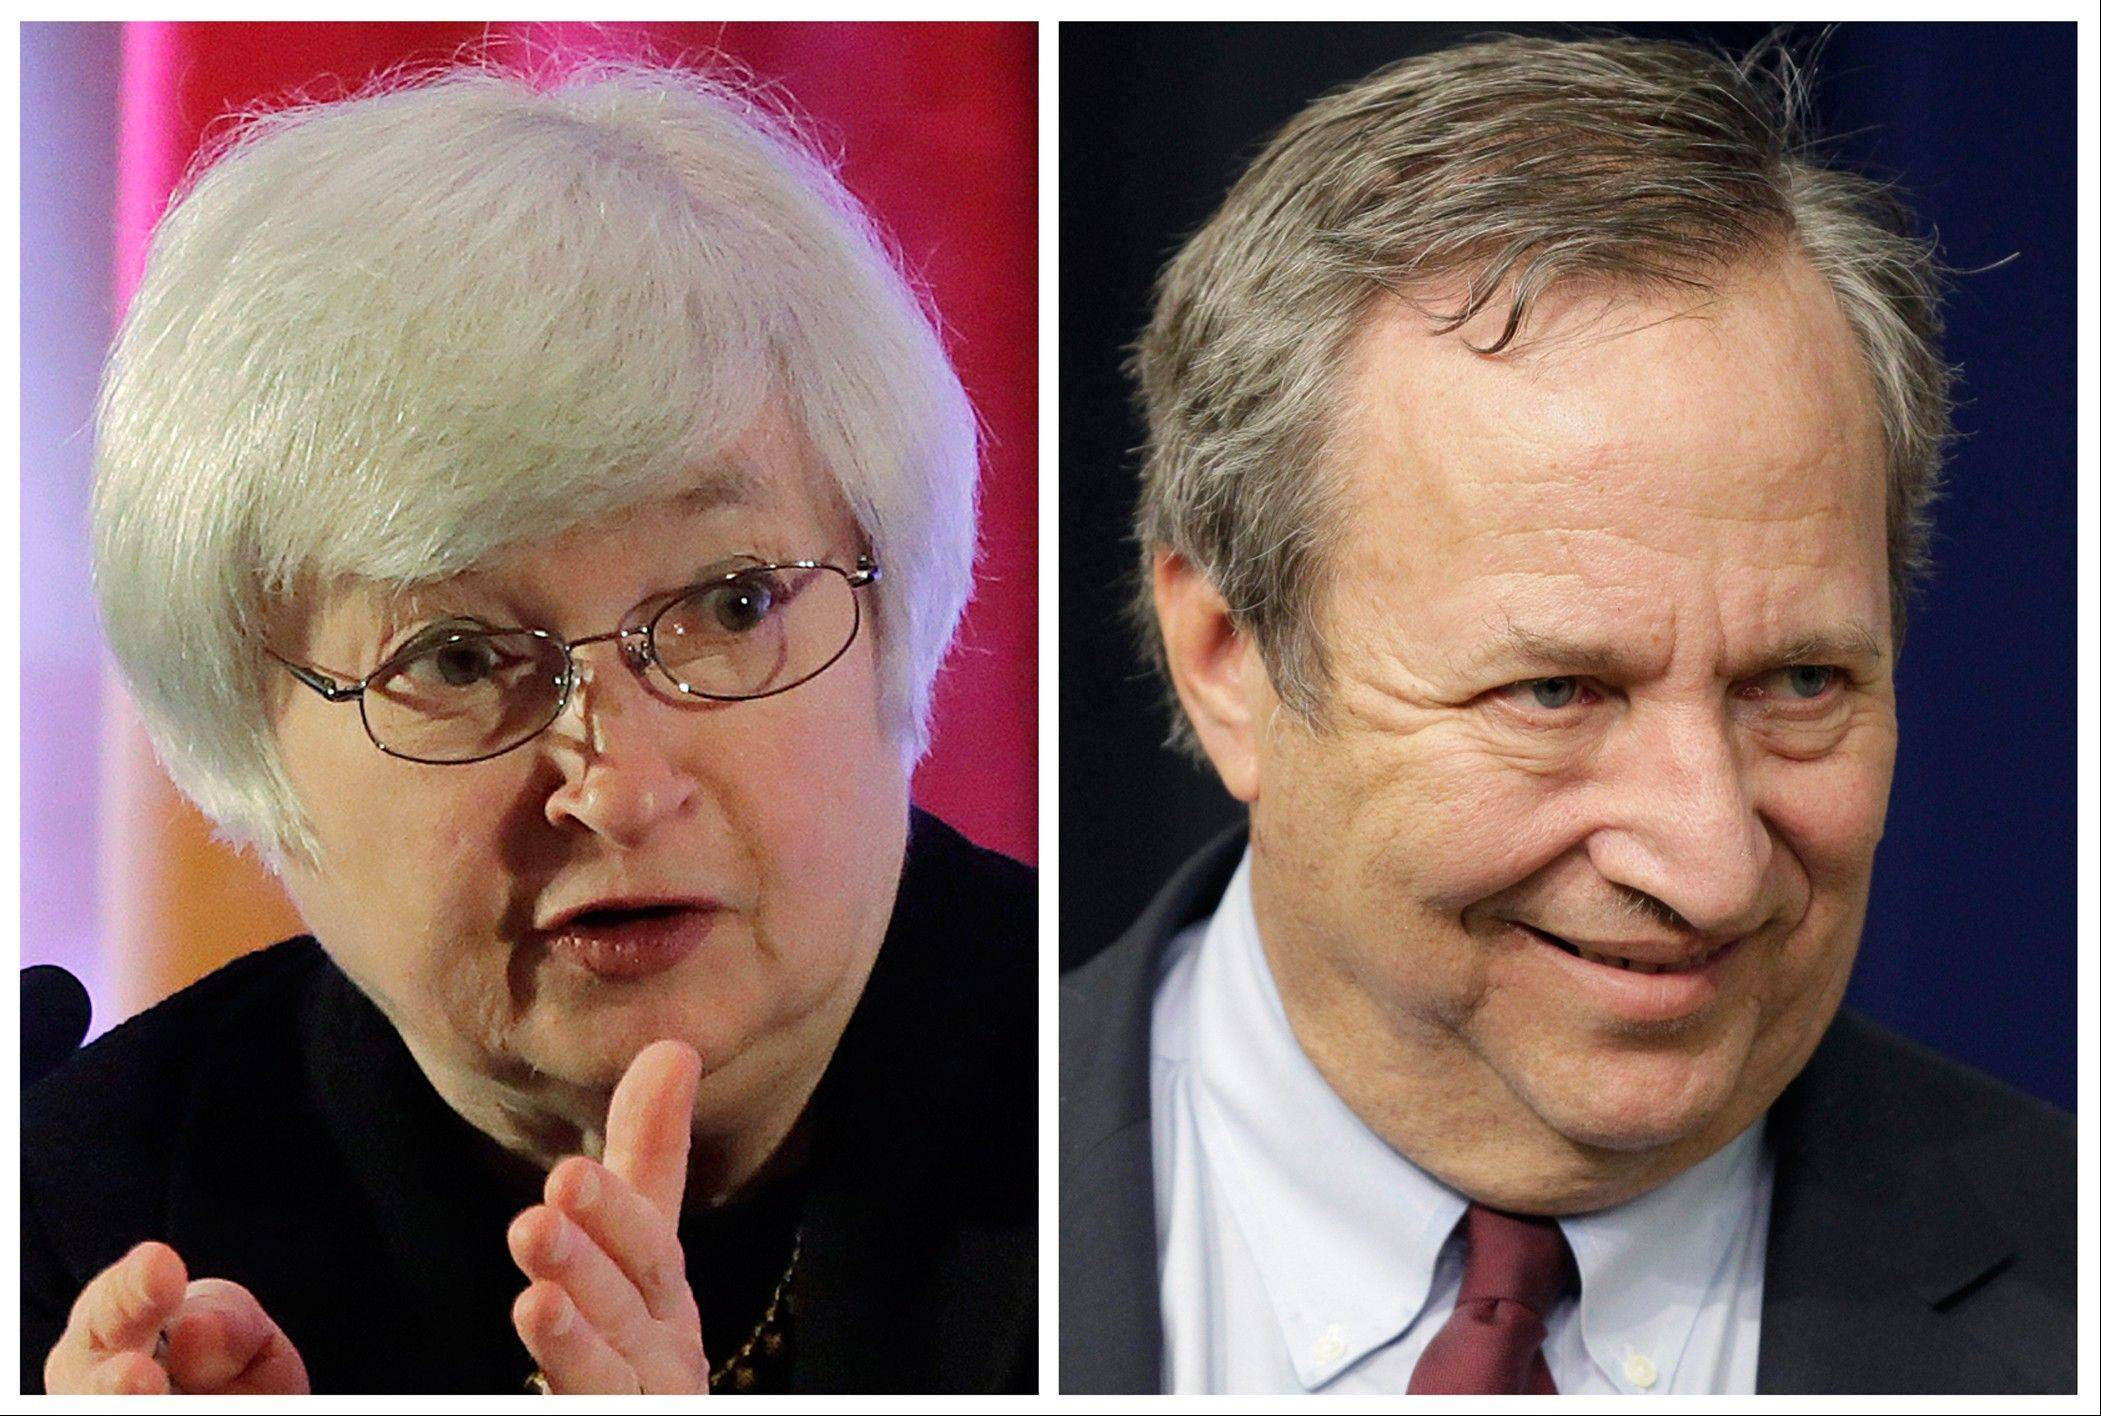 This photo combo shows Fed Vice Chair Janet Yellen, left, and former Treasury Secretary Lawrence Summers. Fed Chairman Ben Bernanke is expected to step down when his second term ends in January 2014, and the contest to succeed him has turned into a public struggle between Yellen and Summers.